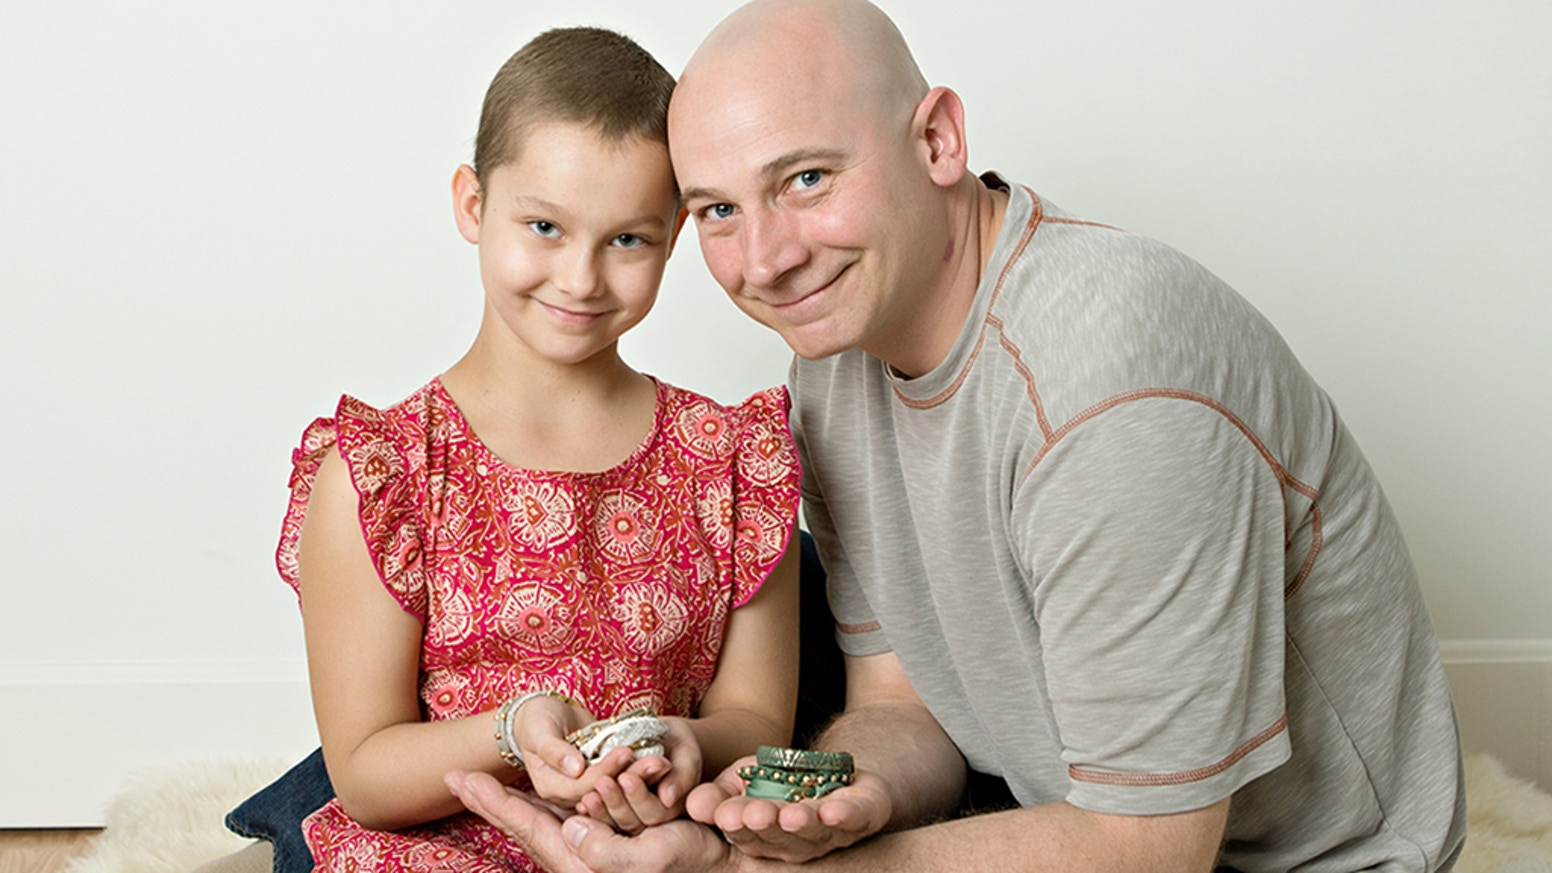 Father and daughter cancer survivors unite to create a line of unique bracelets to help put an end to Childhood Cancer.